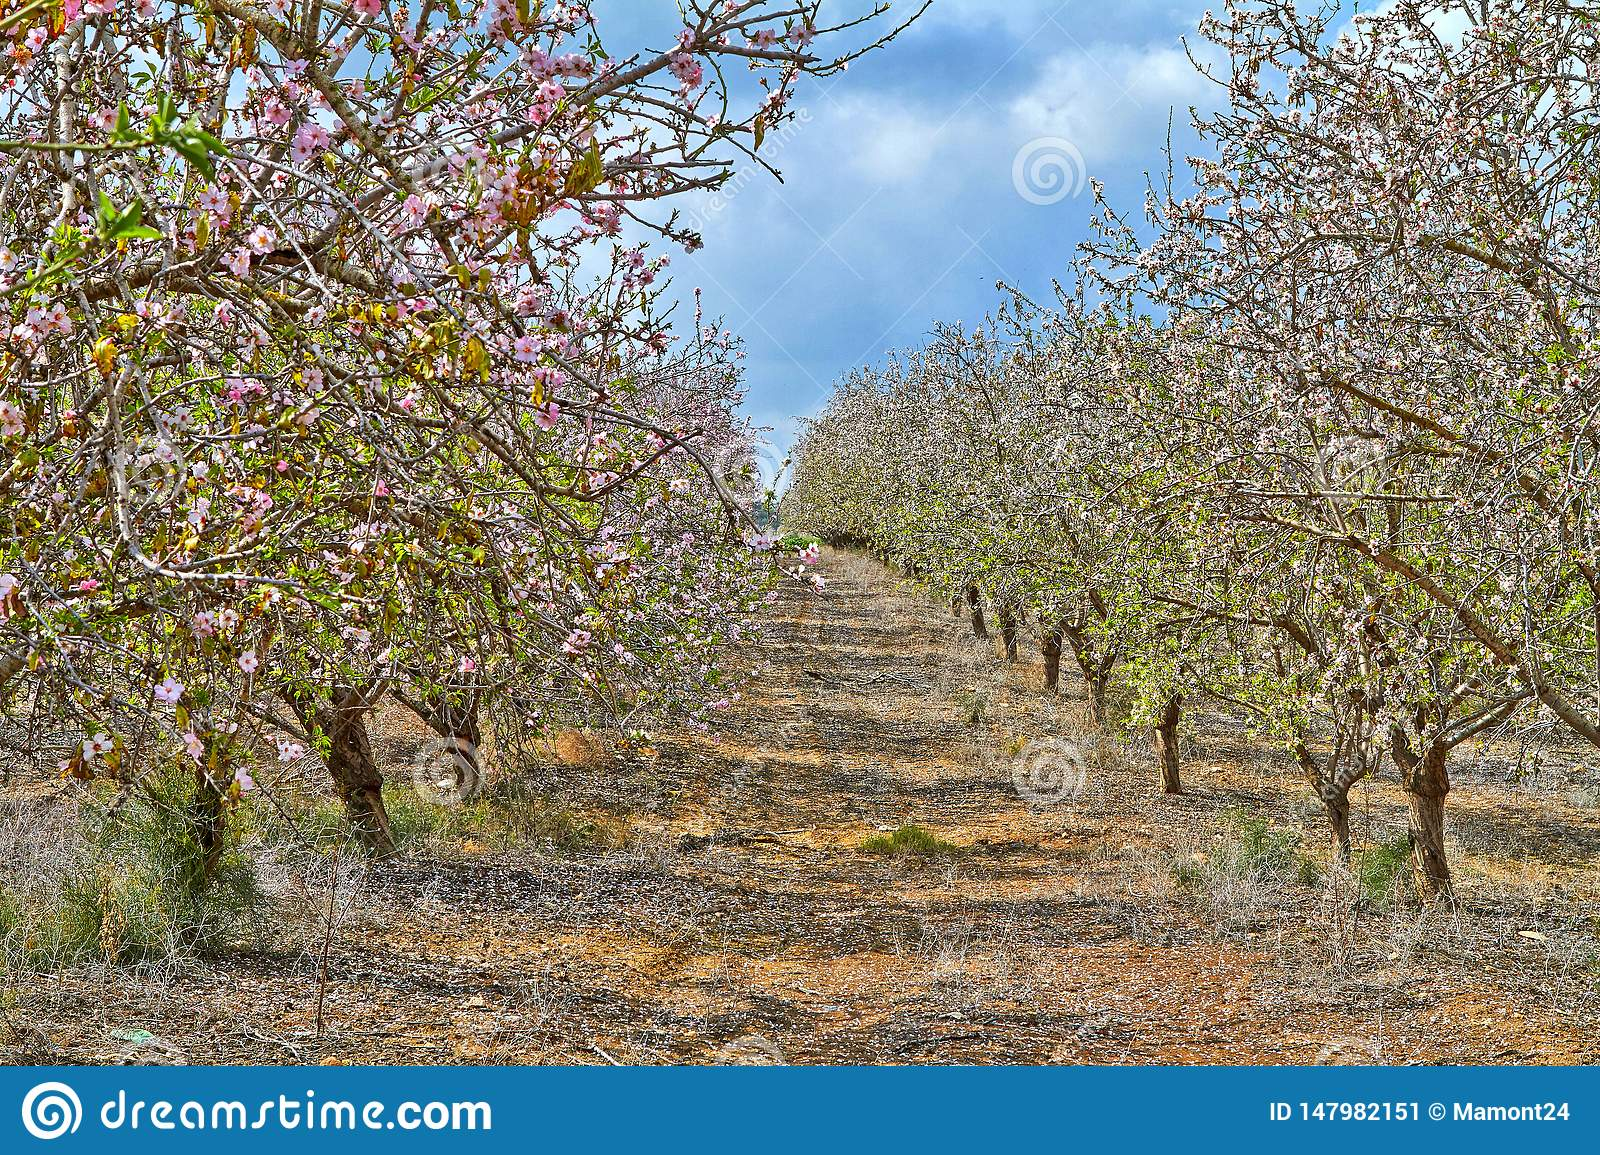 Flowering almond trees in the countryside